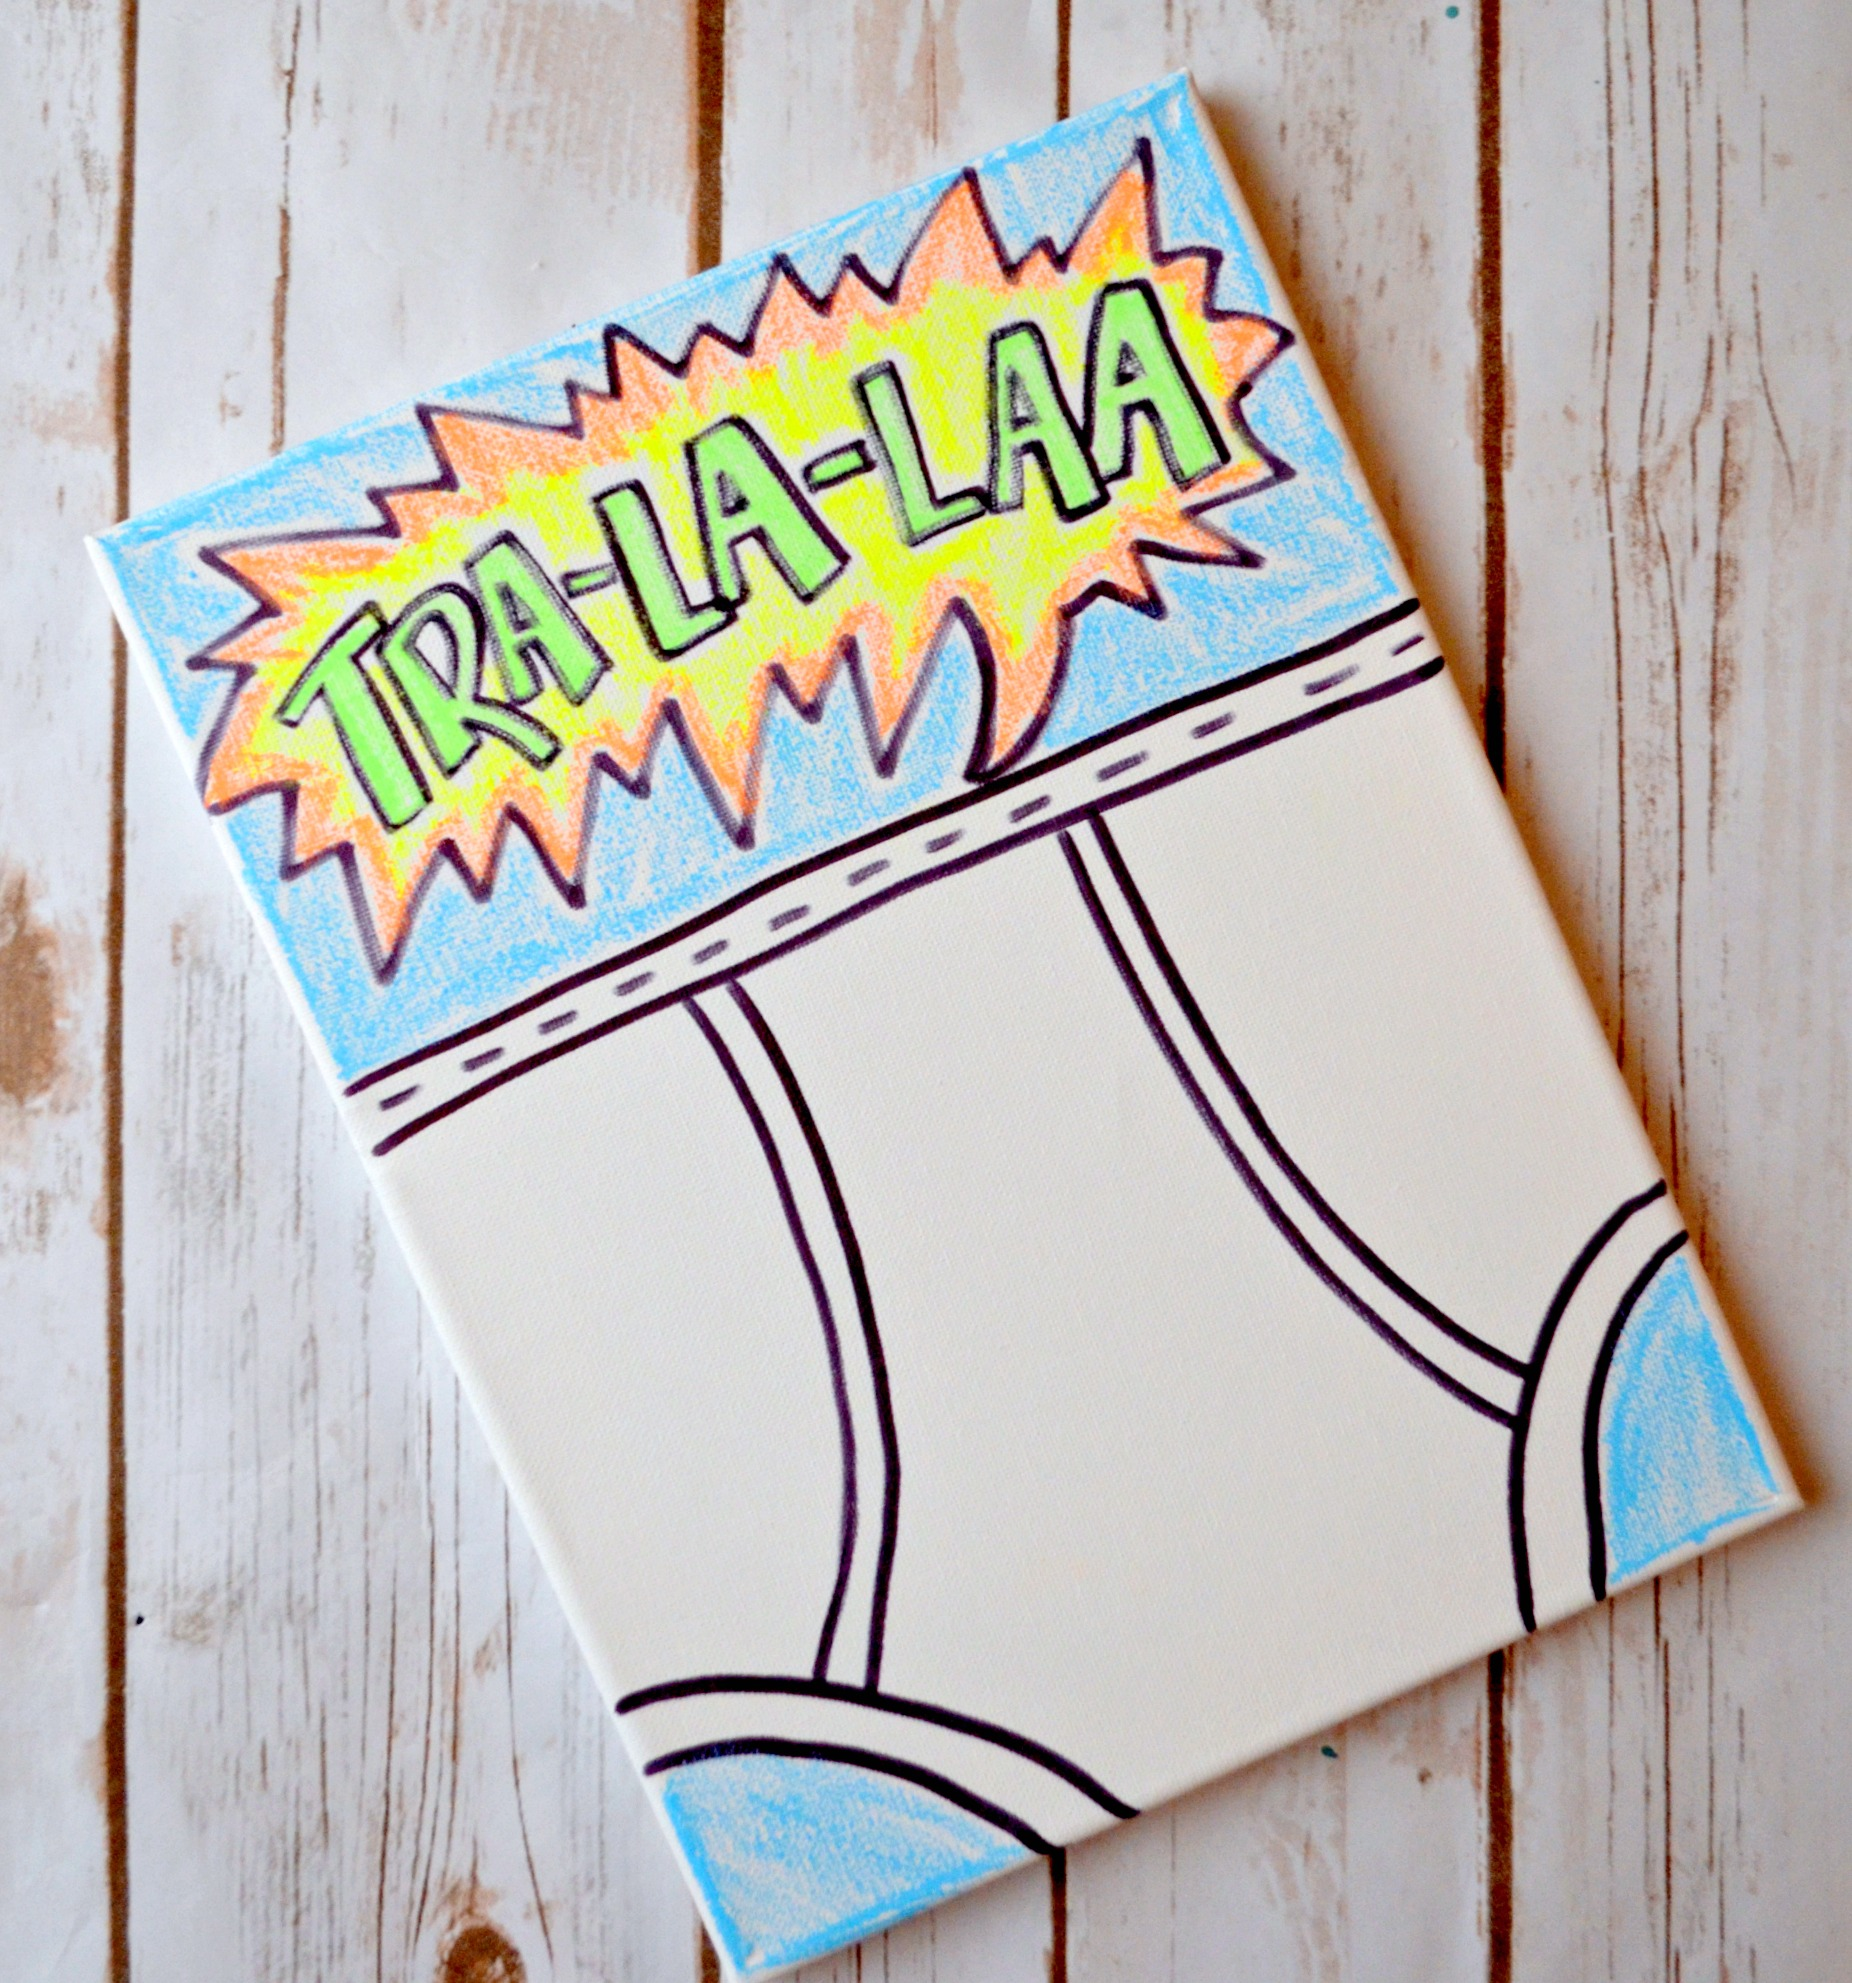 Captain Underpants Craft Project